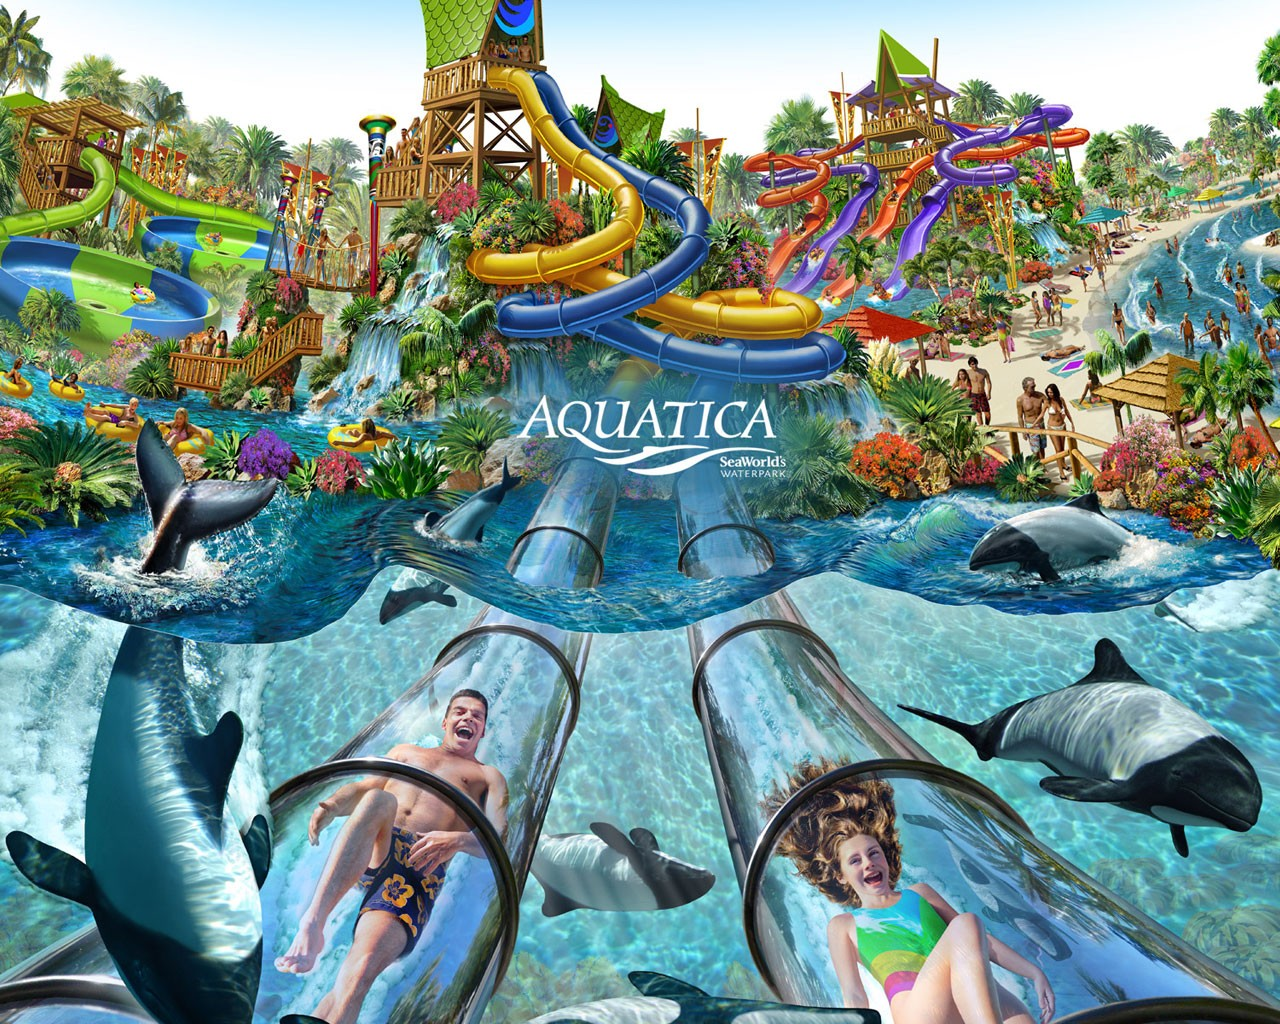 New Government Documents Indicate Aquatica Is Planning A